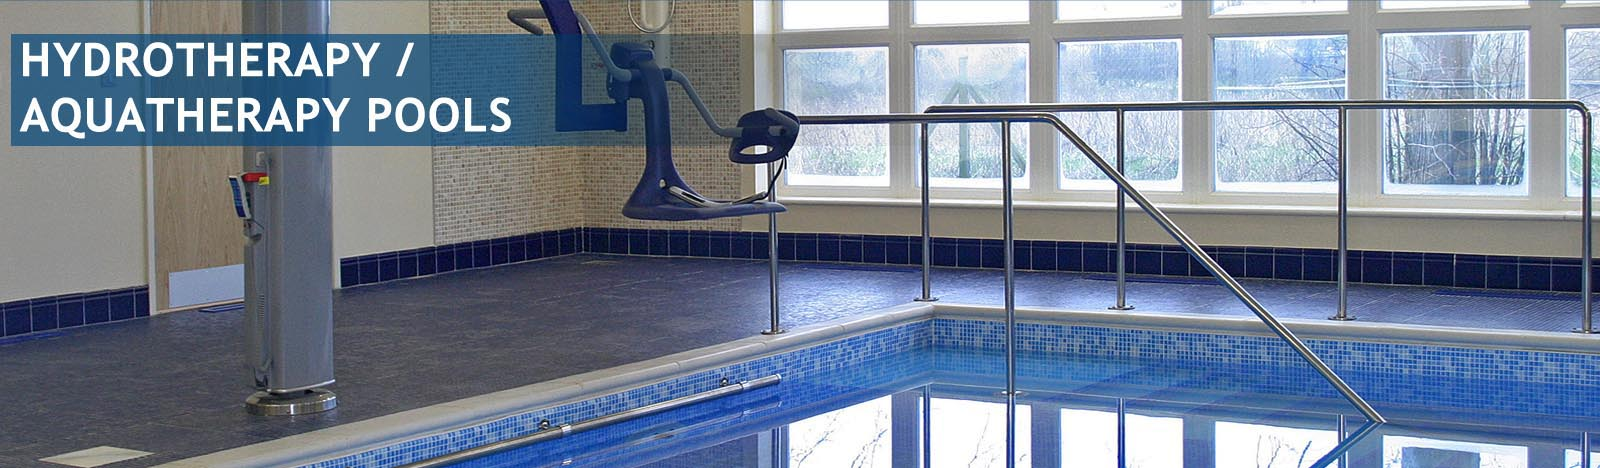 hydrotherapy pools manchester